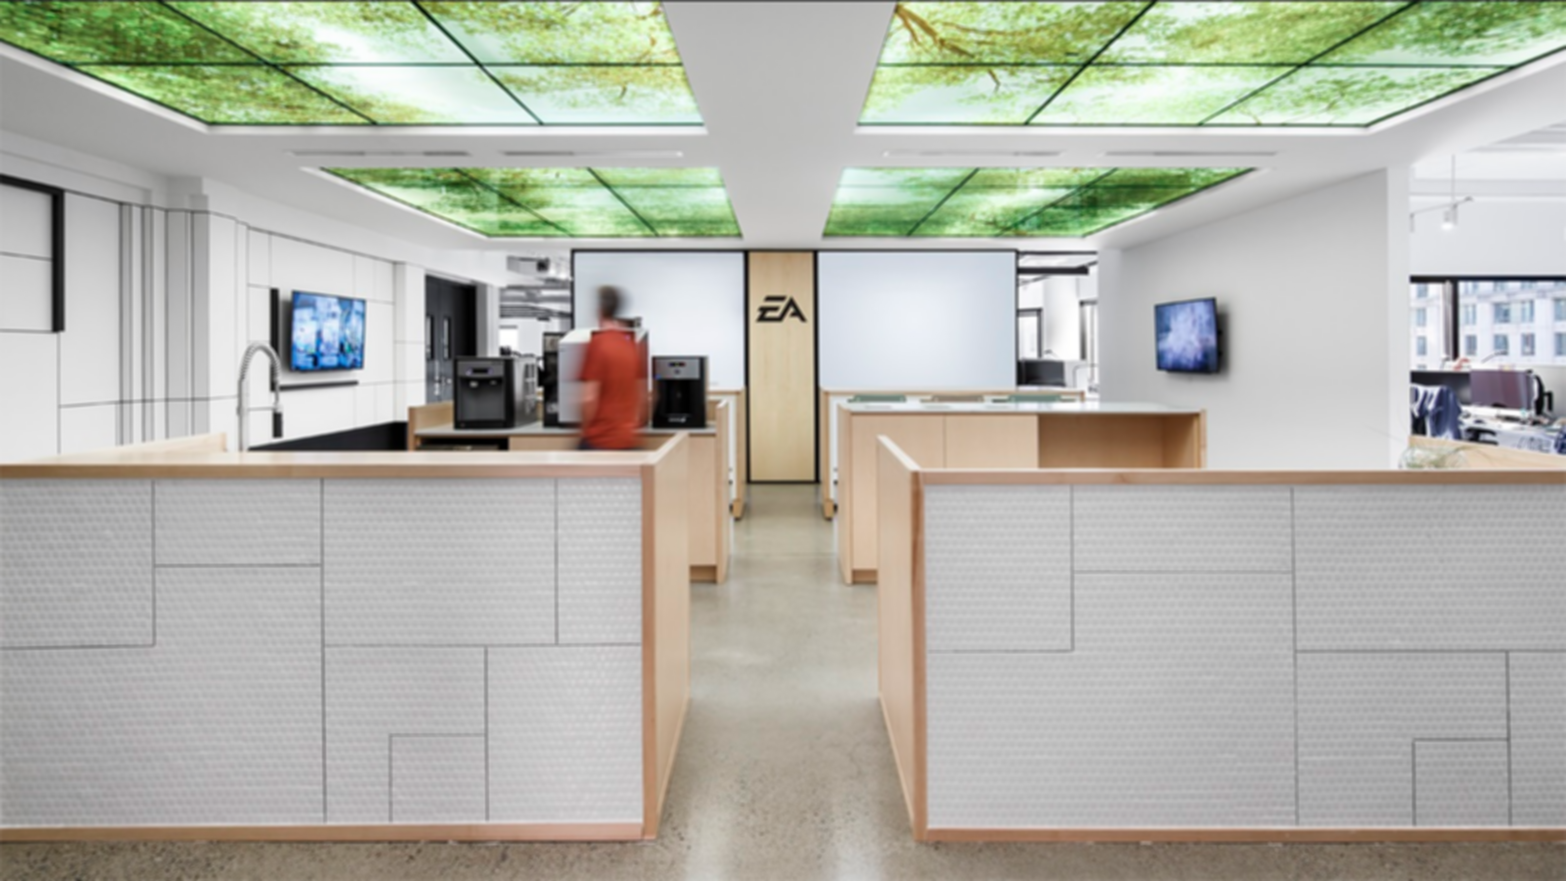 Electronic Arts Offices - Interior